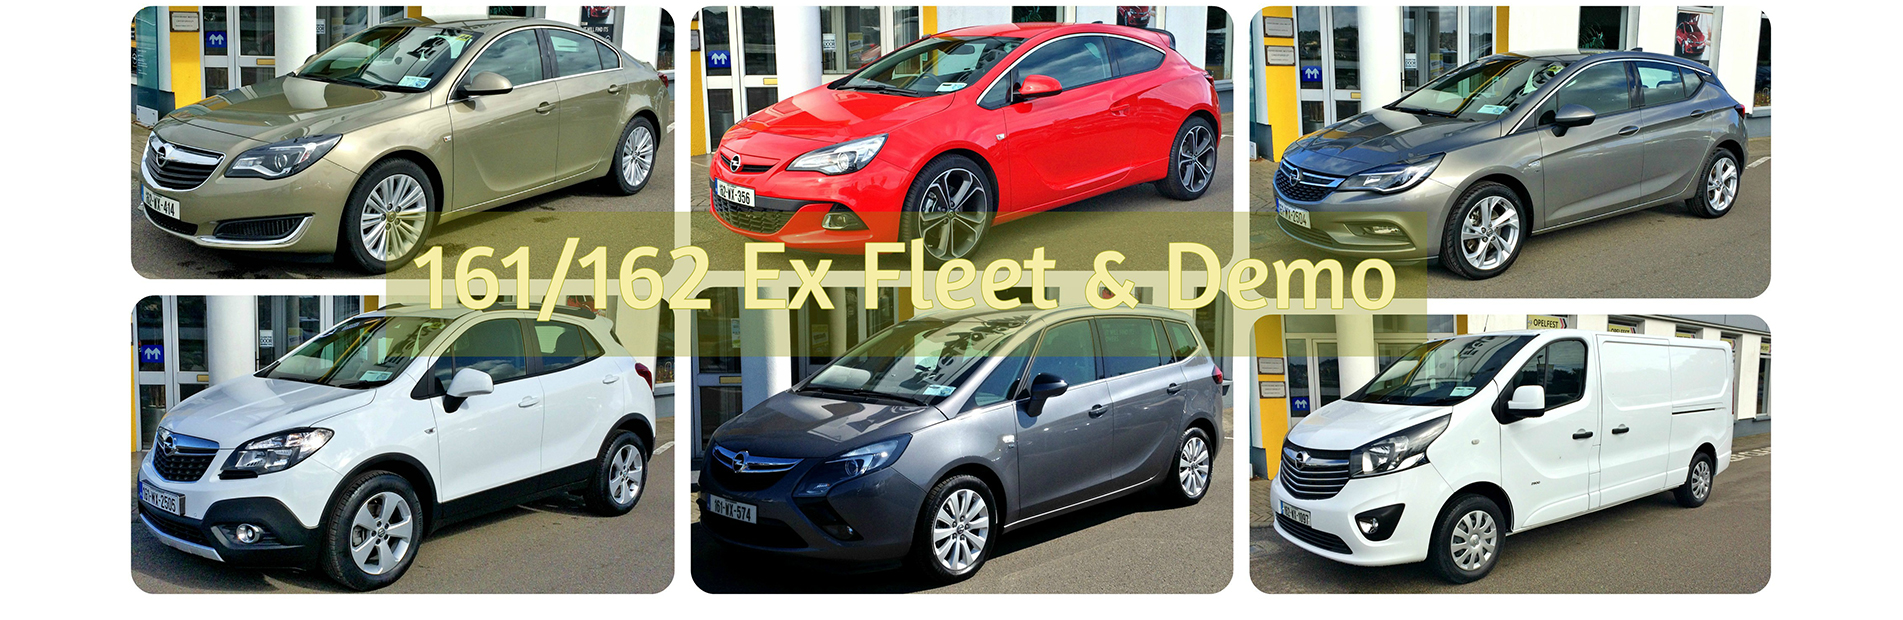 Used Cars Wexford Used Opel Wexford Car Service Wexford